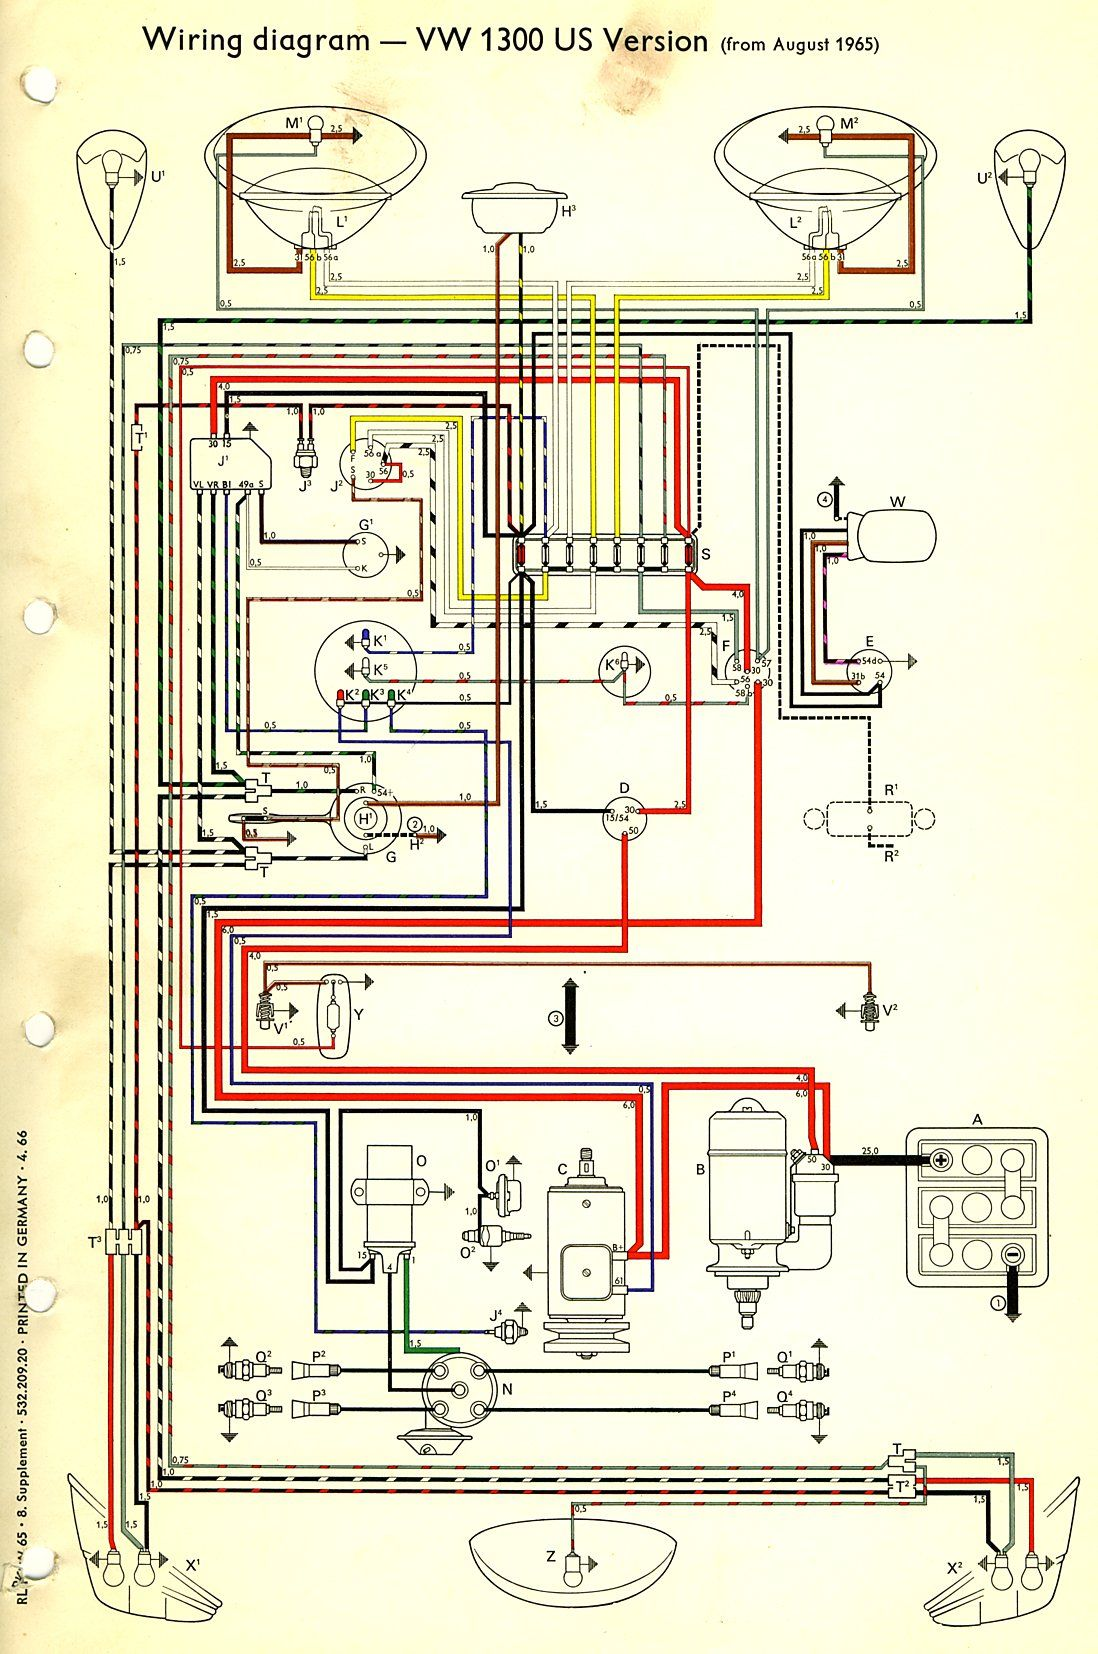 dune buggy wiring schematic google search 69 bug or 69 dune rh pinterest com gy6 dune buggy wiring schematic vw dune buggy wiring schematic